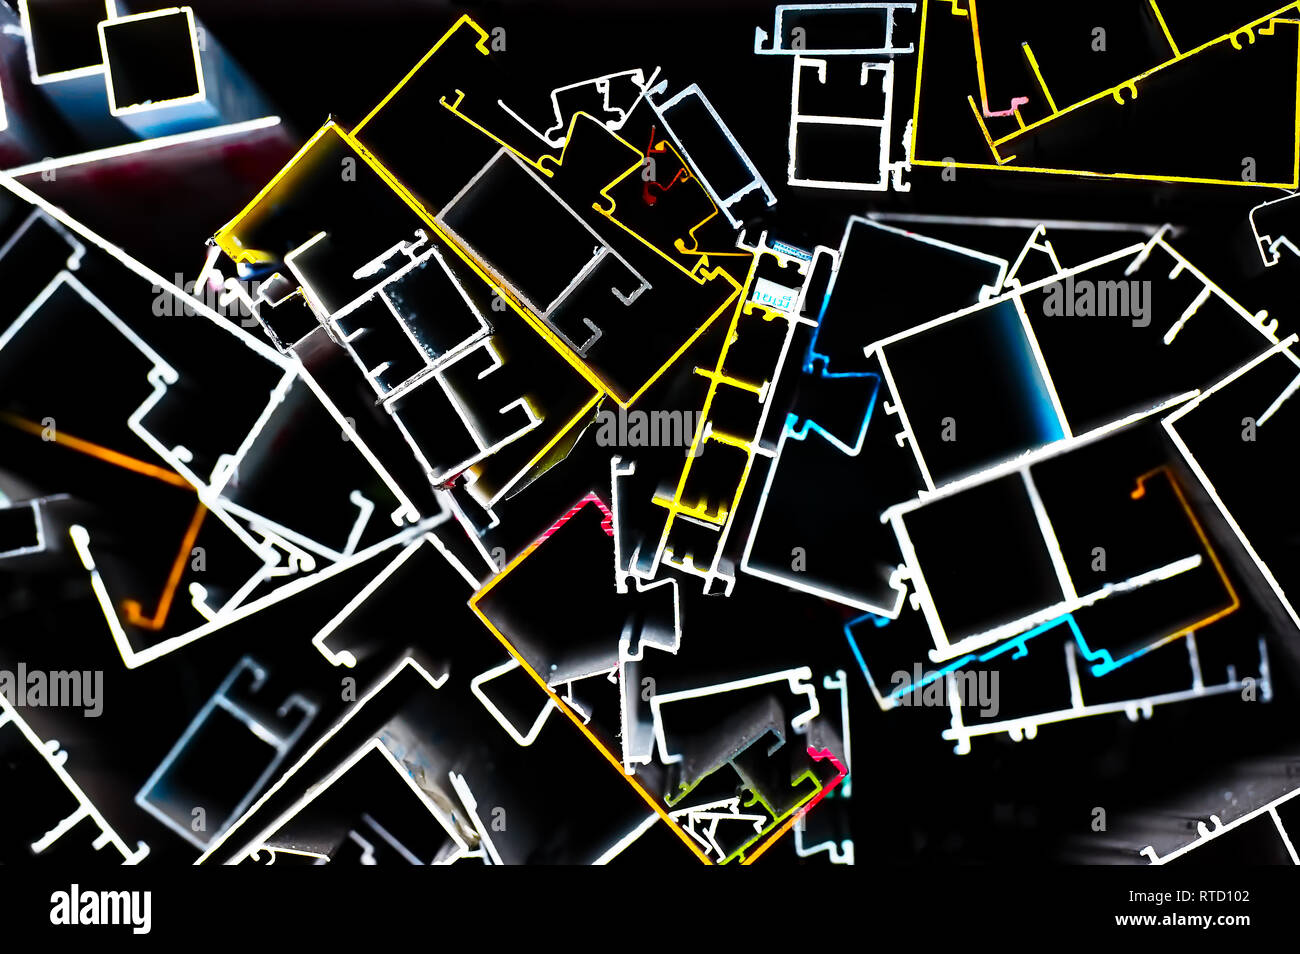 Graphic view of metal bars used in the construction business, marked in different colors for identification, photographed against a black background - Stock Image